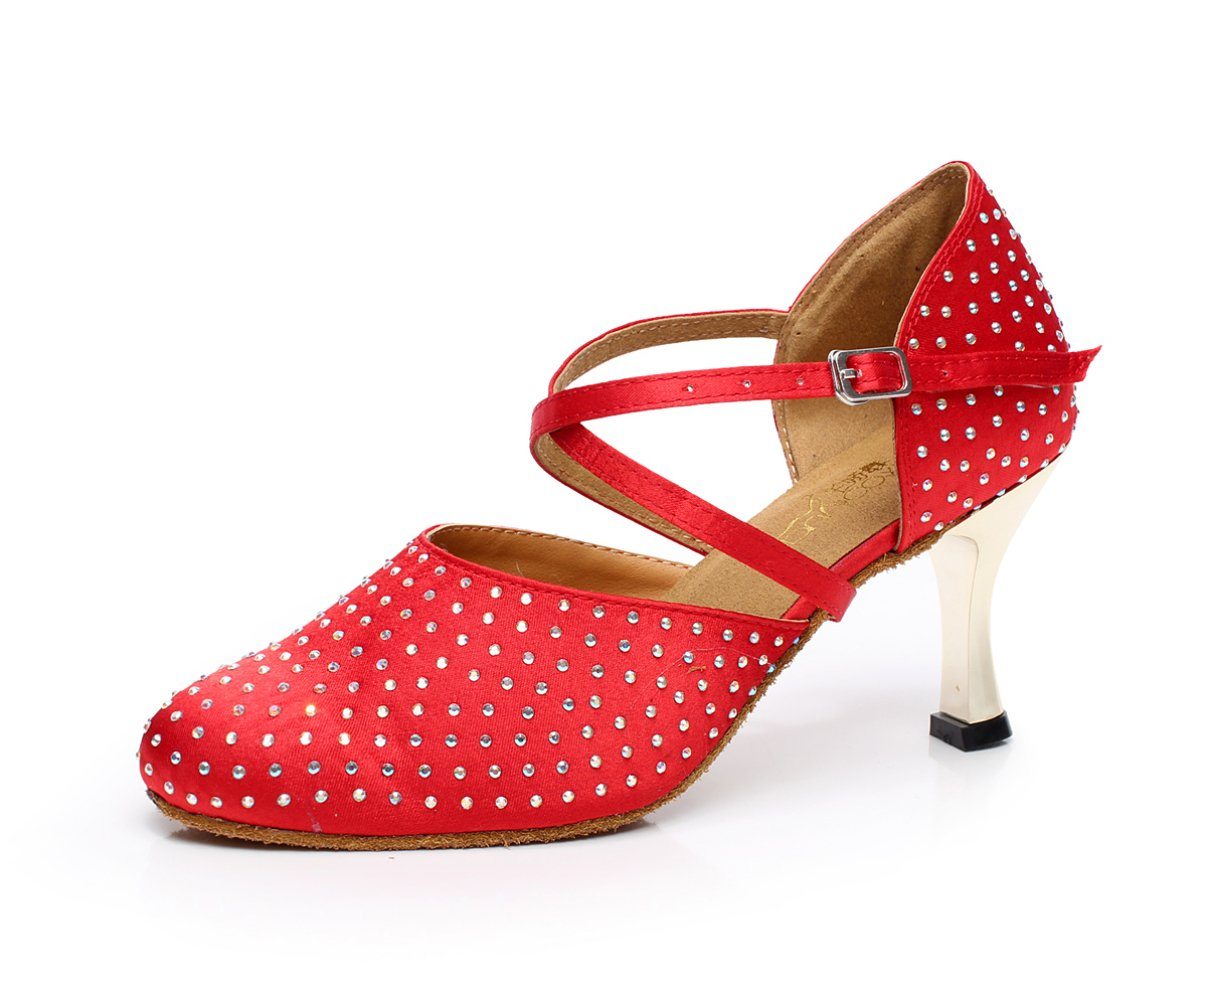 JSHOE Frauen Kristalle Sparking Satin Latin Salsa Tanzschuhe Tango/Tee/Samba/Modern/Jazz Schuhe Sandalen High Heels,RedHeeled7.5cm-UK4/EU35/Our36  UK4/EU35/Our36|Redheeled7.5cm